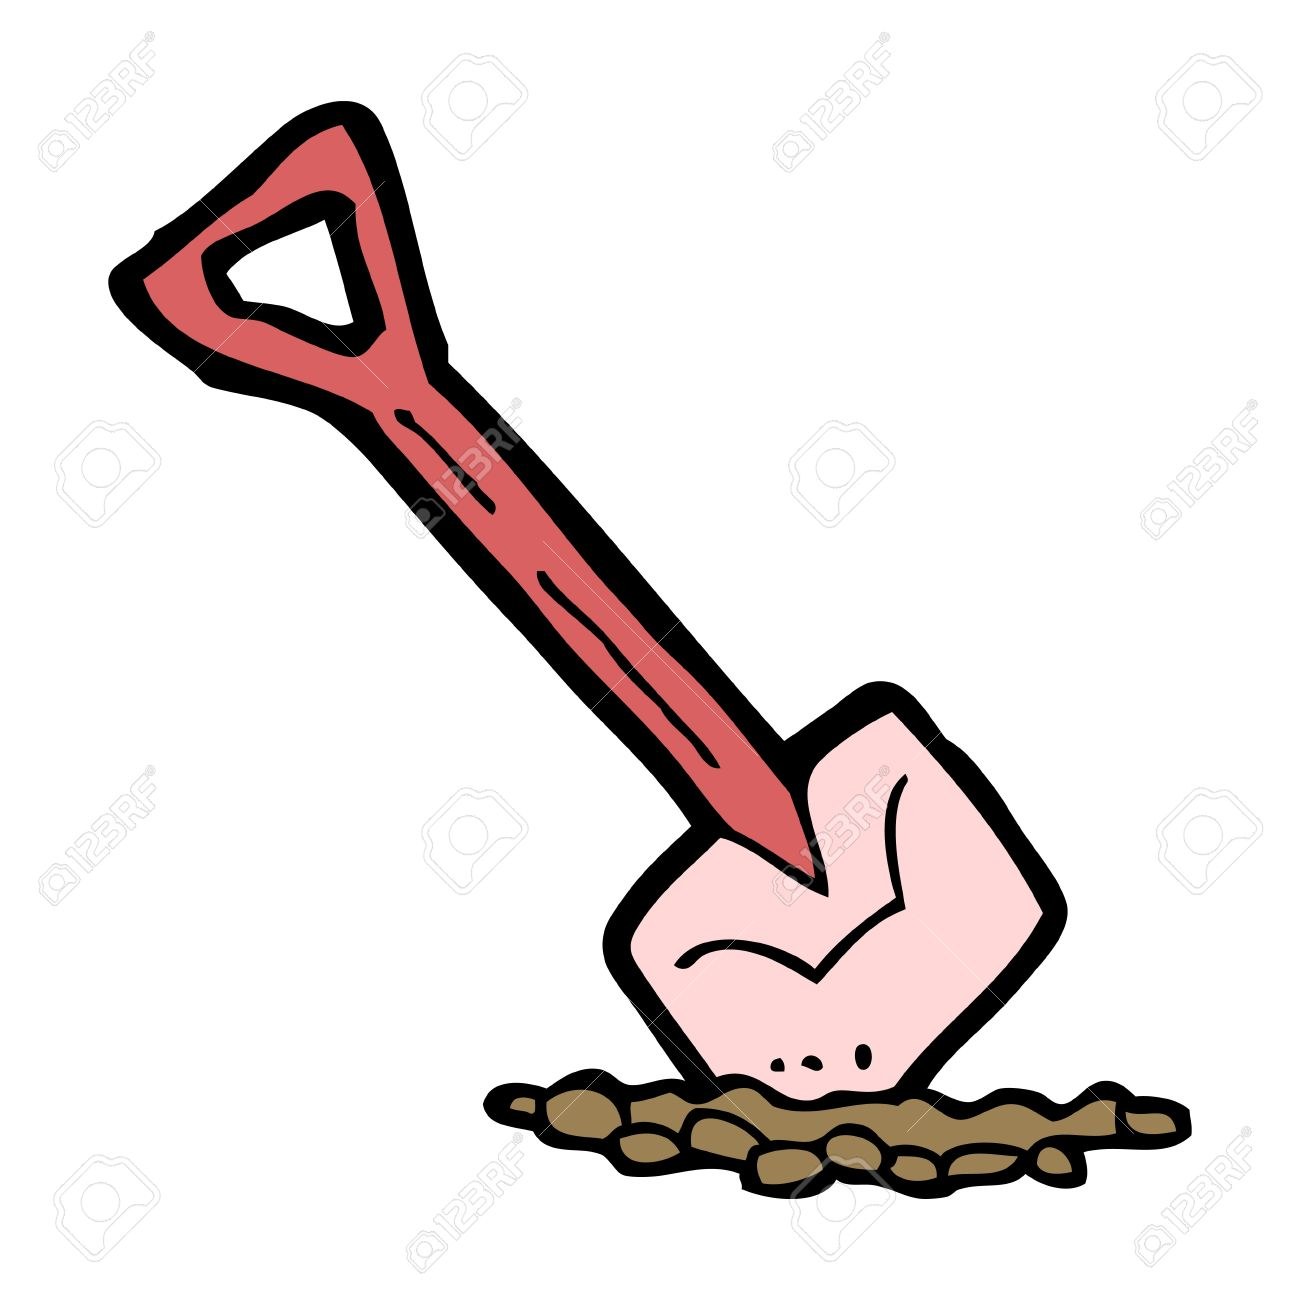 cartoon spade Stock Vector - 16533383